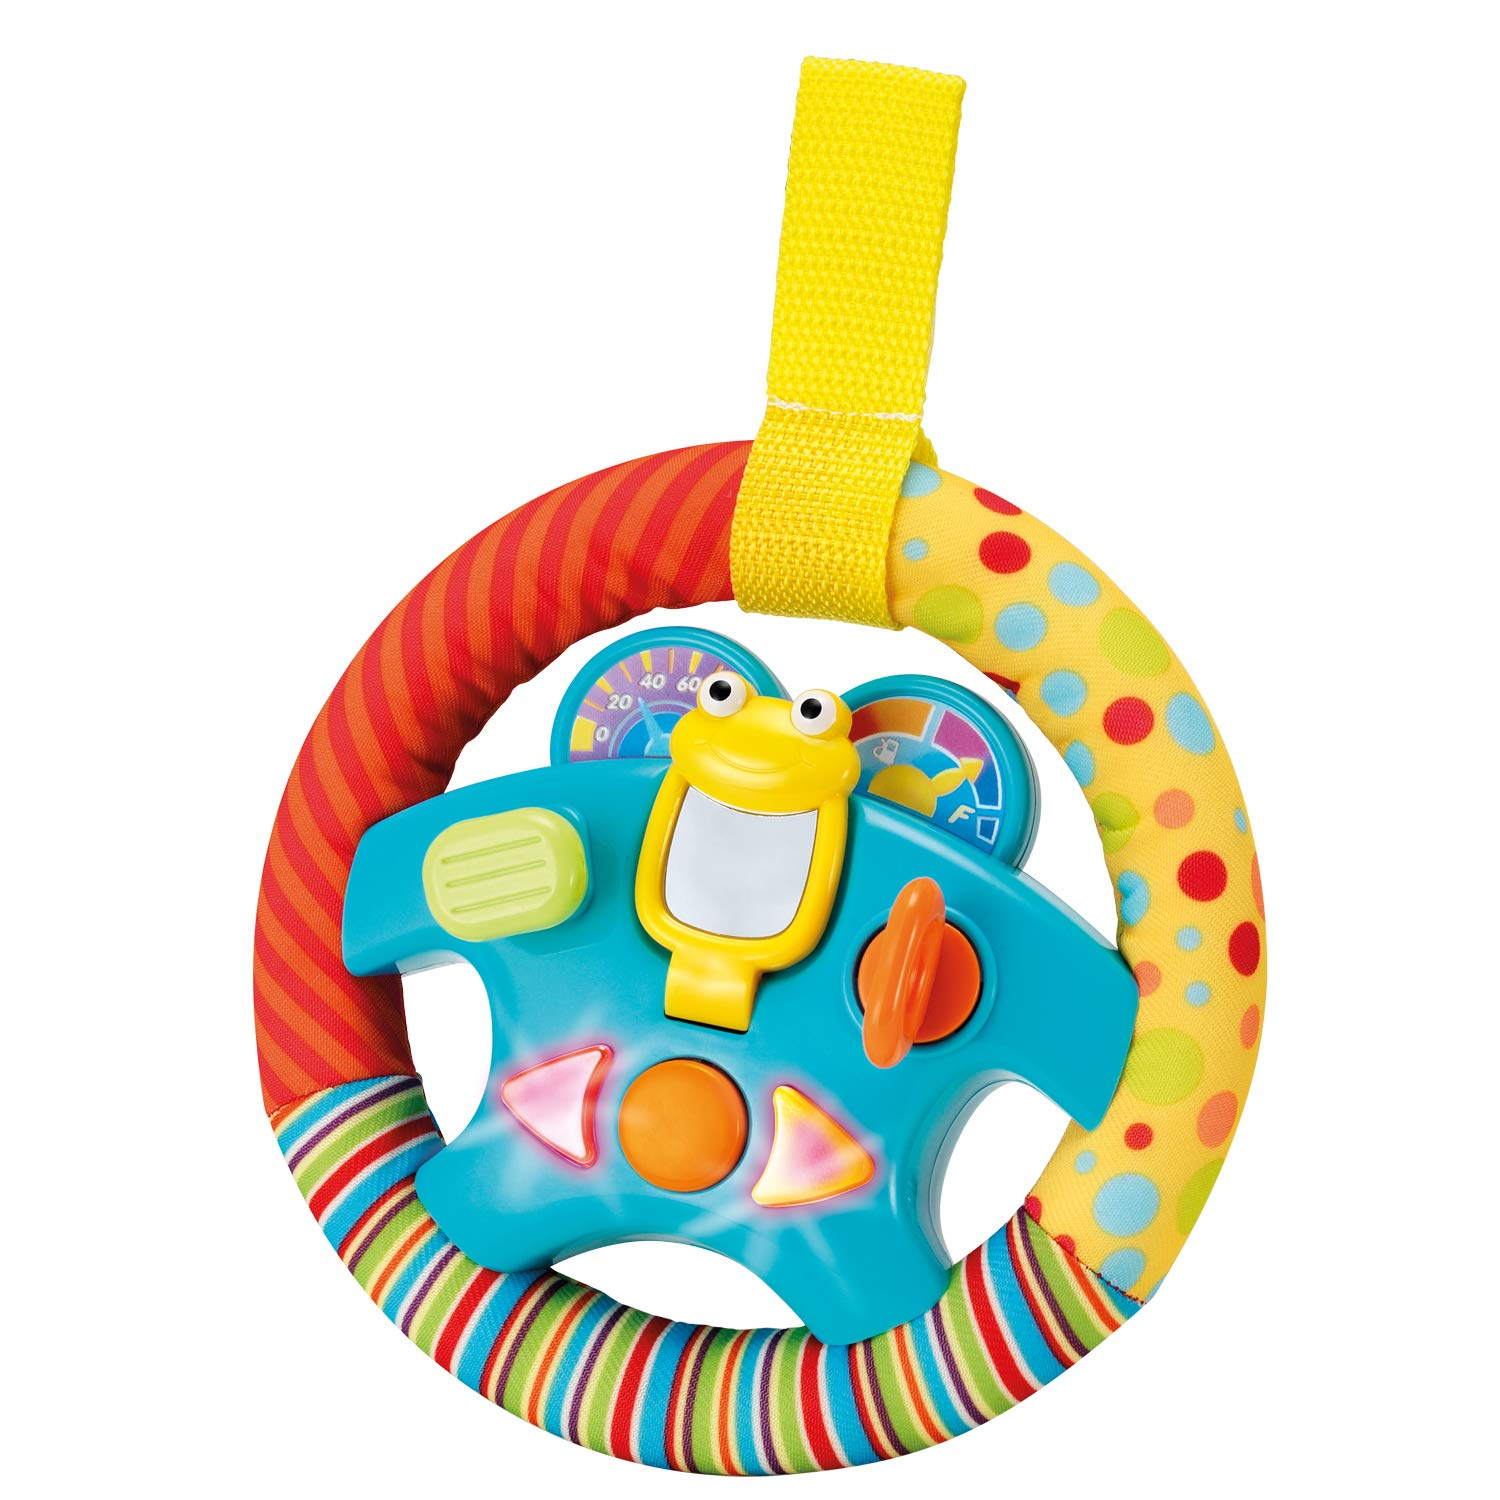 "Steering Wheel Toy ""My Little Driver"" with Motion Sensors, Music, Lights and Sounds"